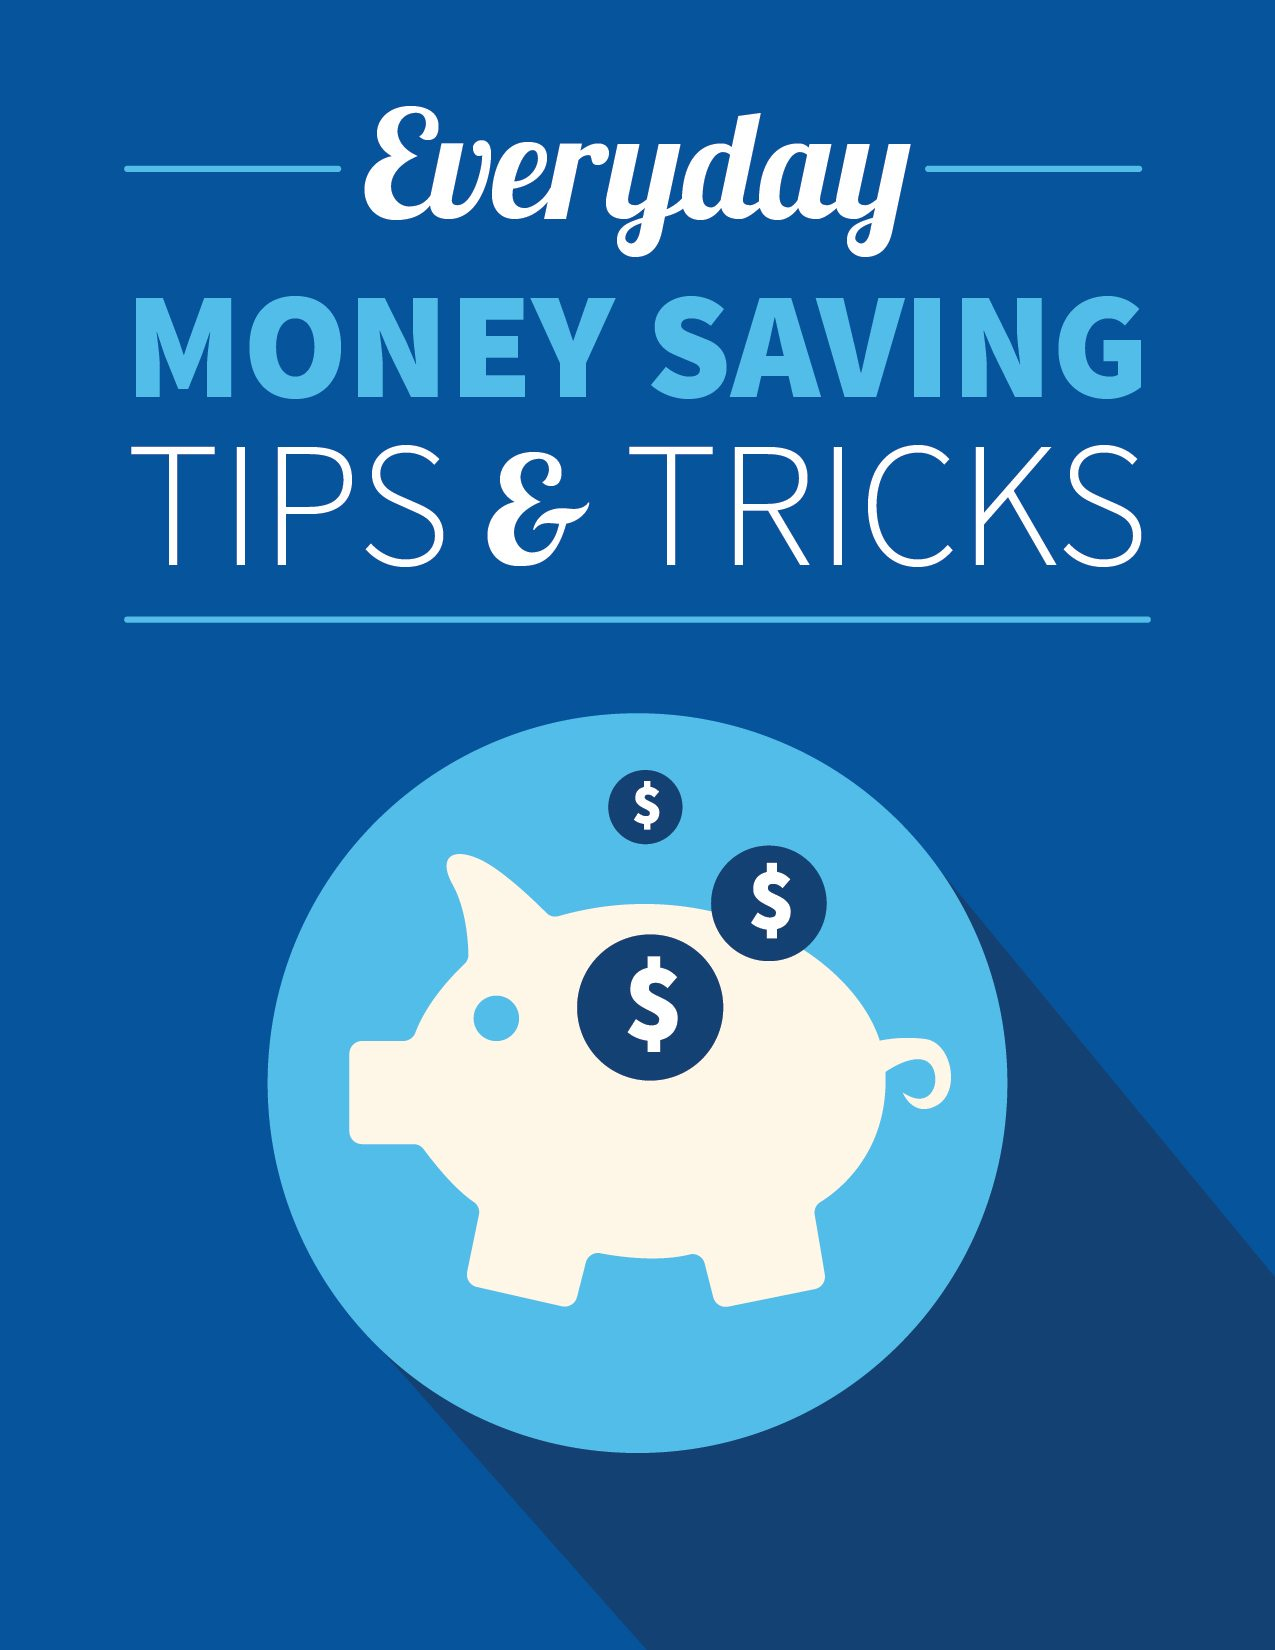 Everyday Money Saving Tips & Tricks